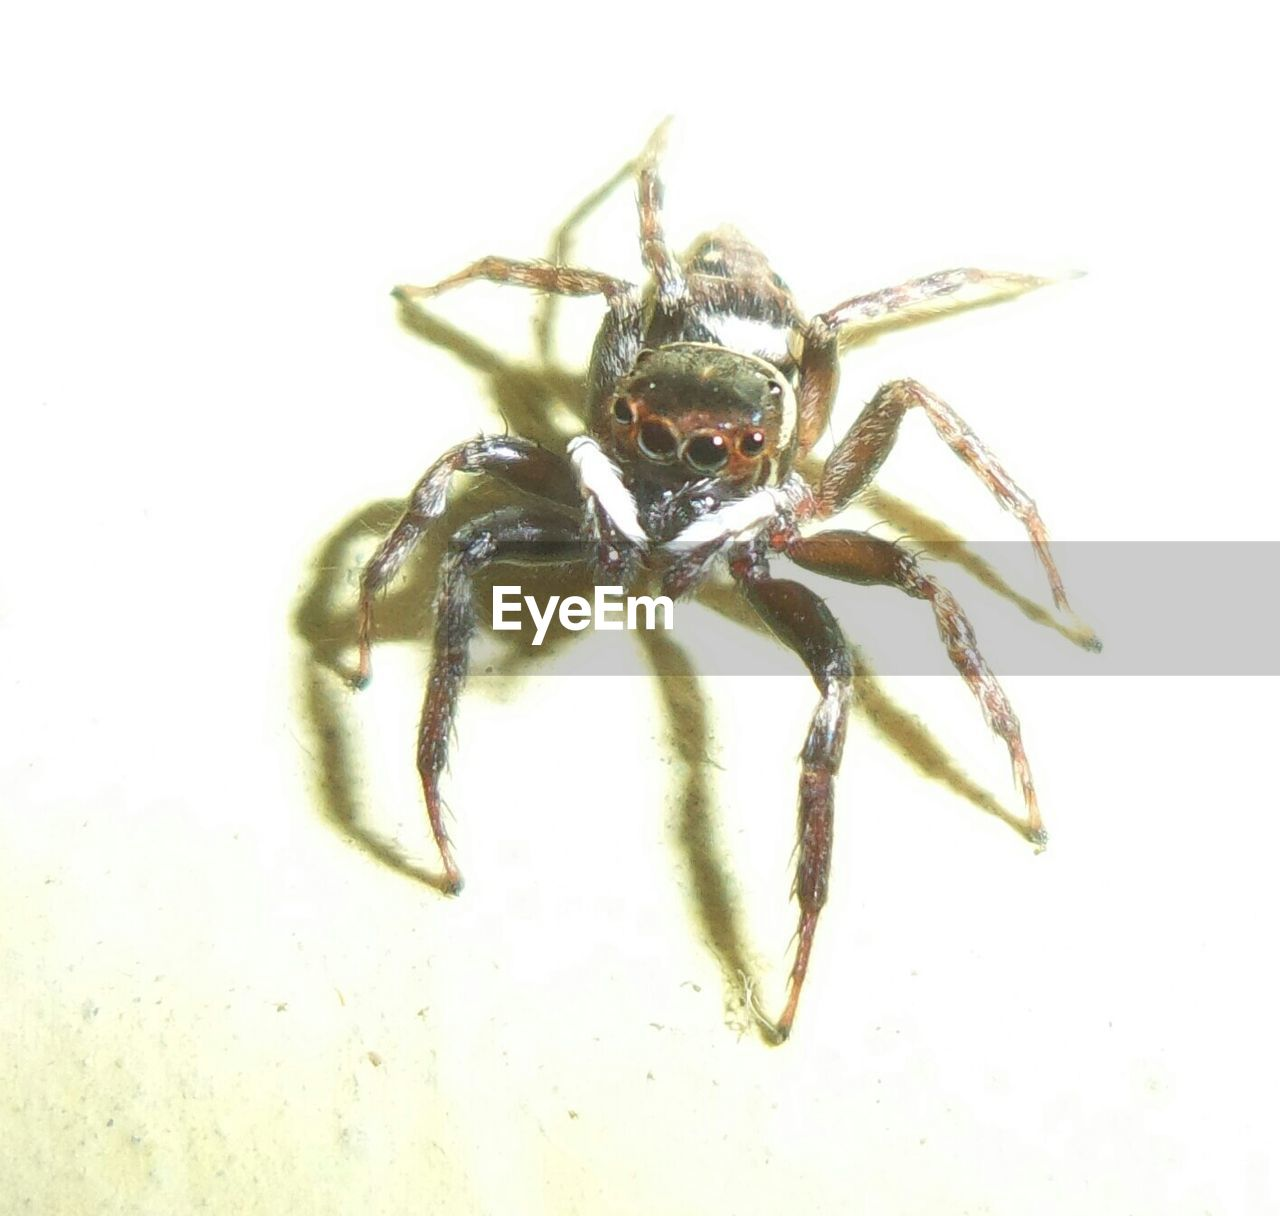 spider, one animal, animal themes, jumping spider, animal wildlife, animals in the wild, close-up, no people, white background, outdoors, day